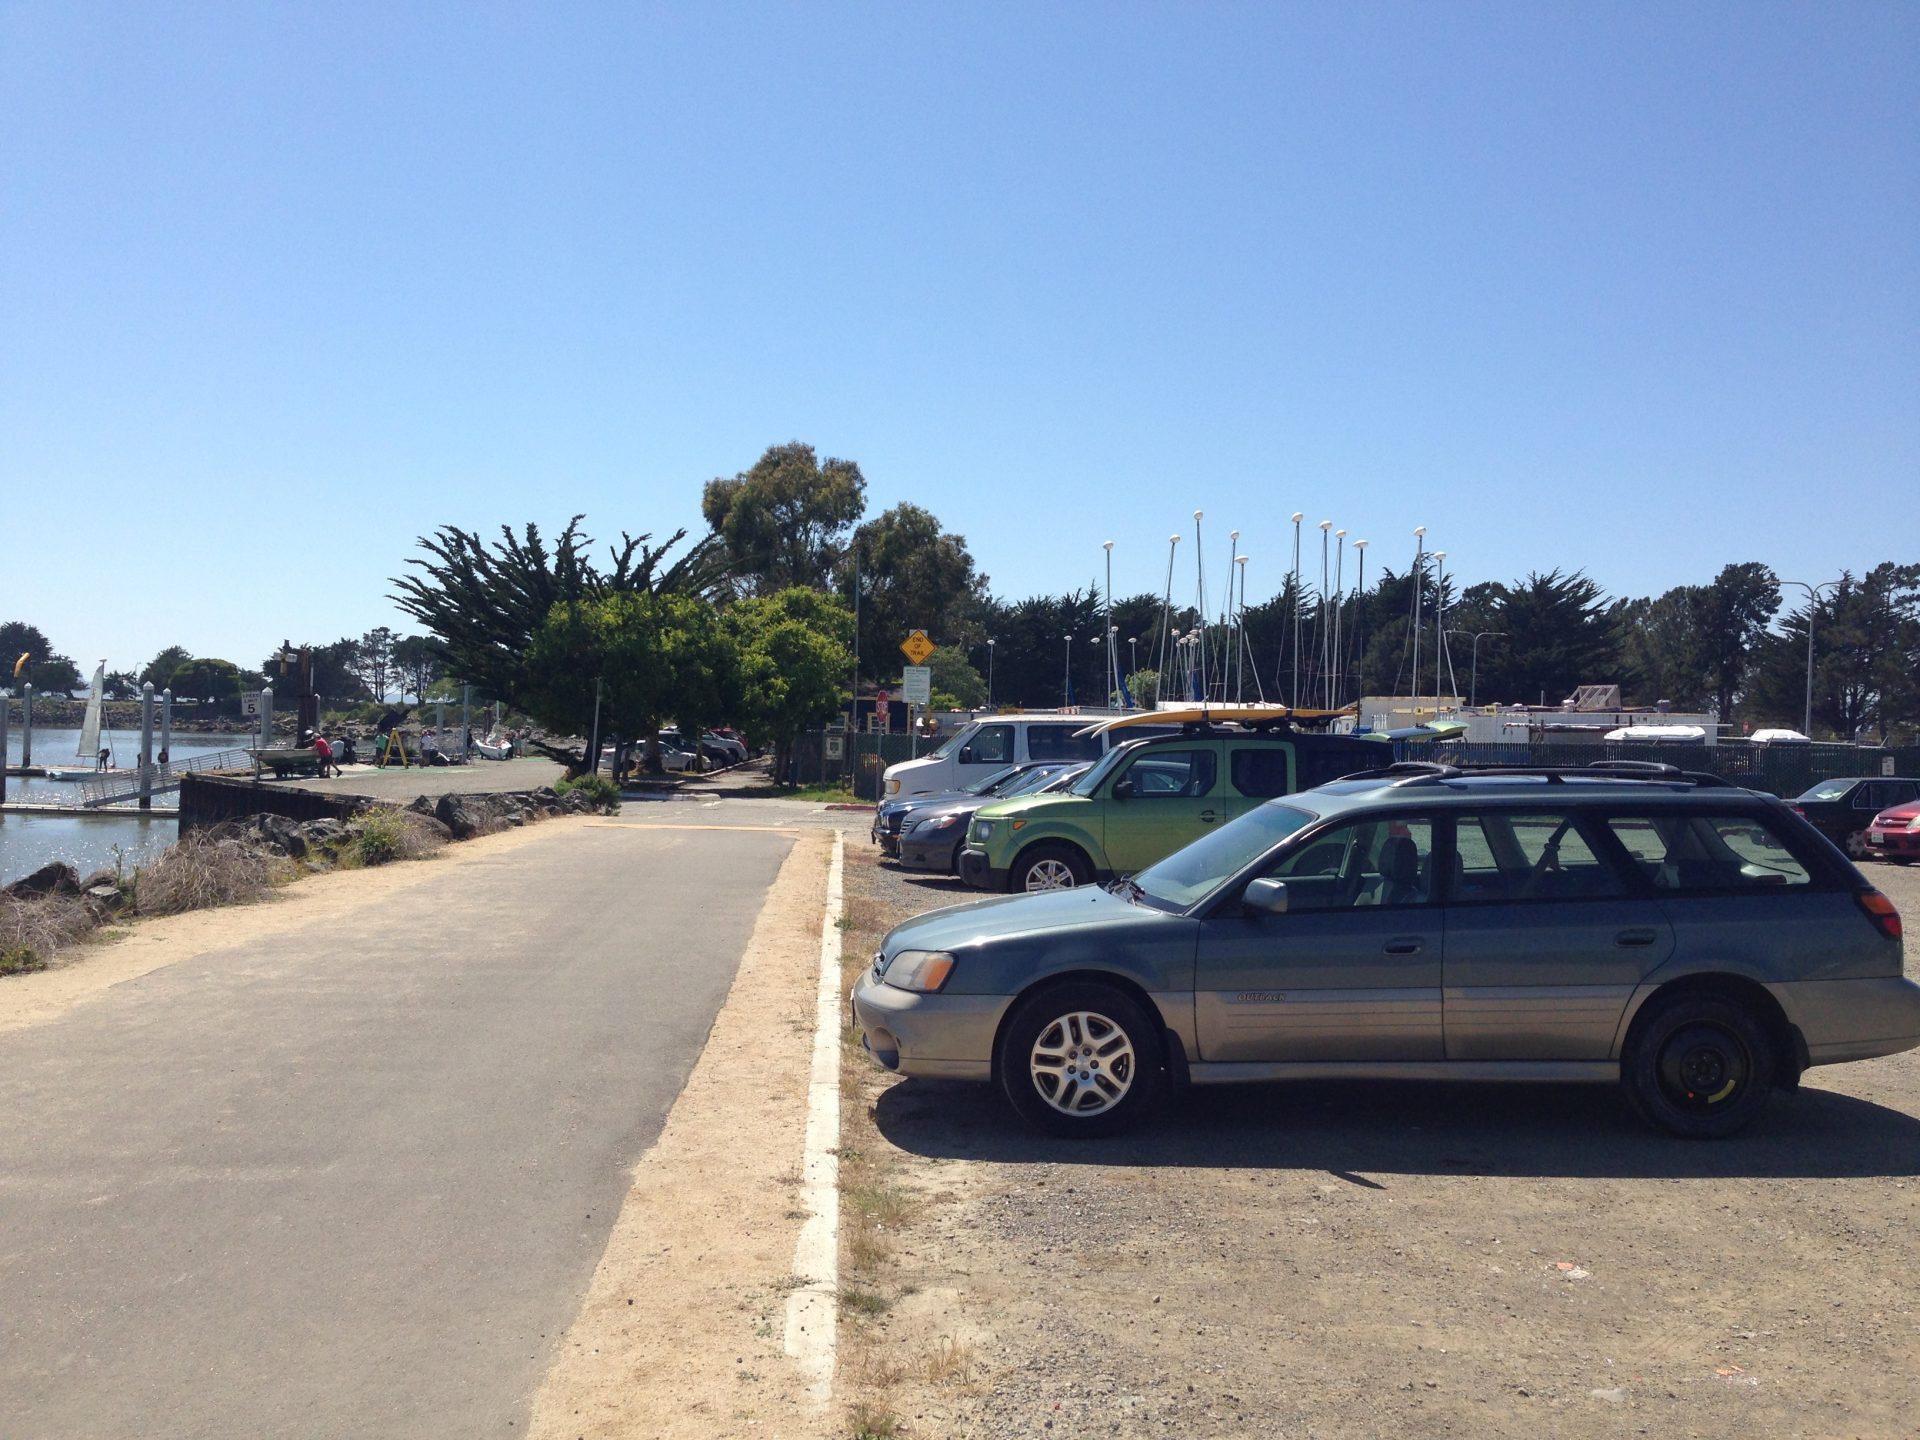 Wide paved path on left, gravel parking lot on right with several cars